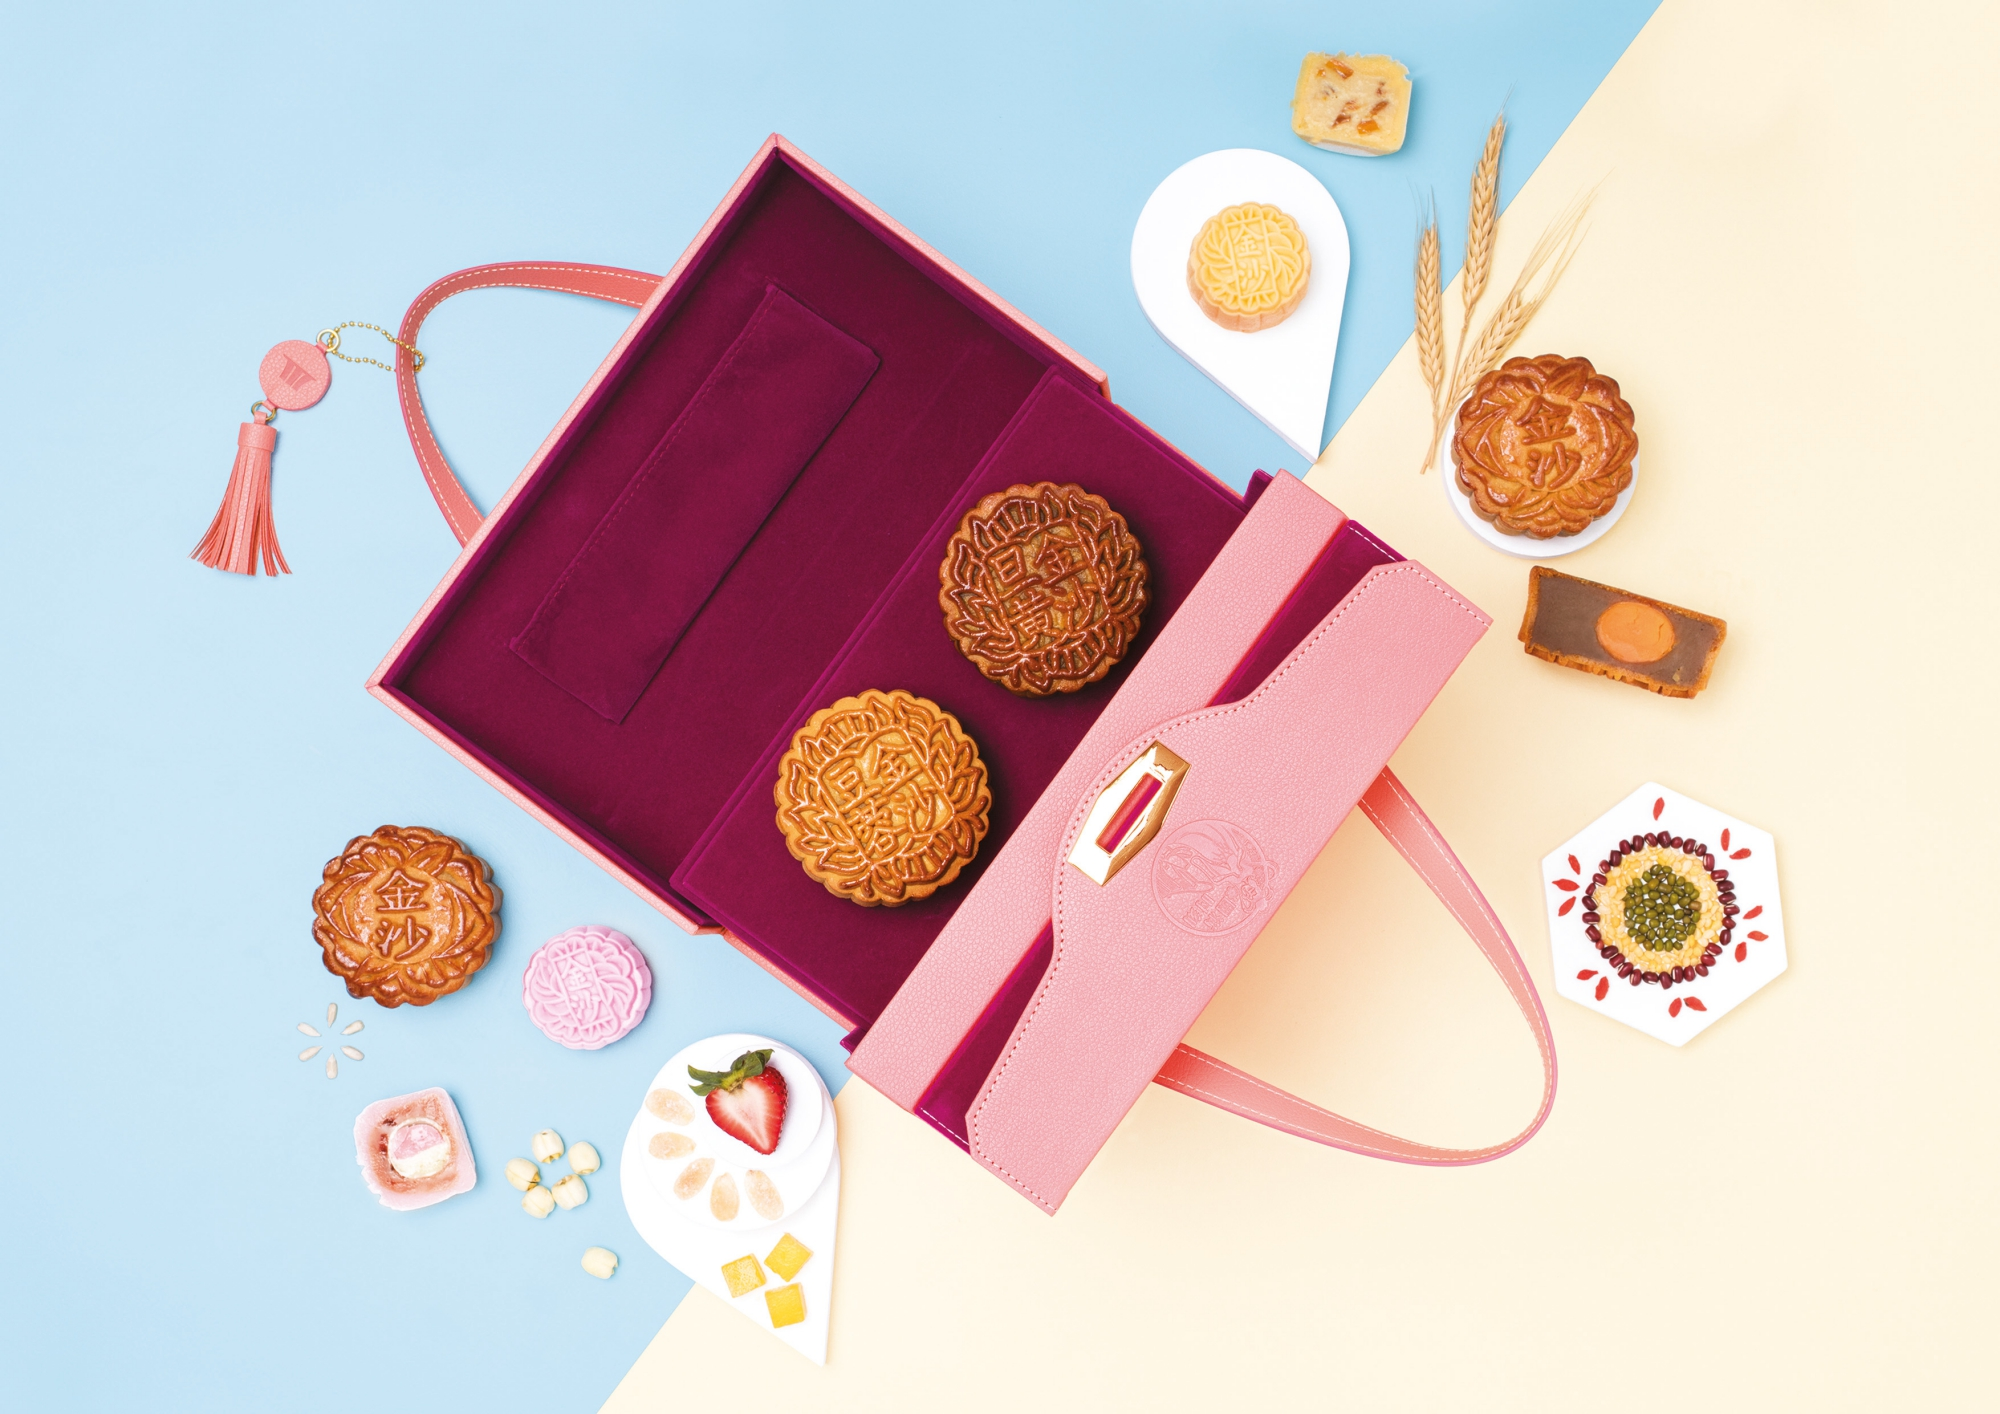 Marina Bay Sands' traditional and modern mooncakes